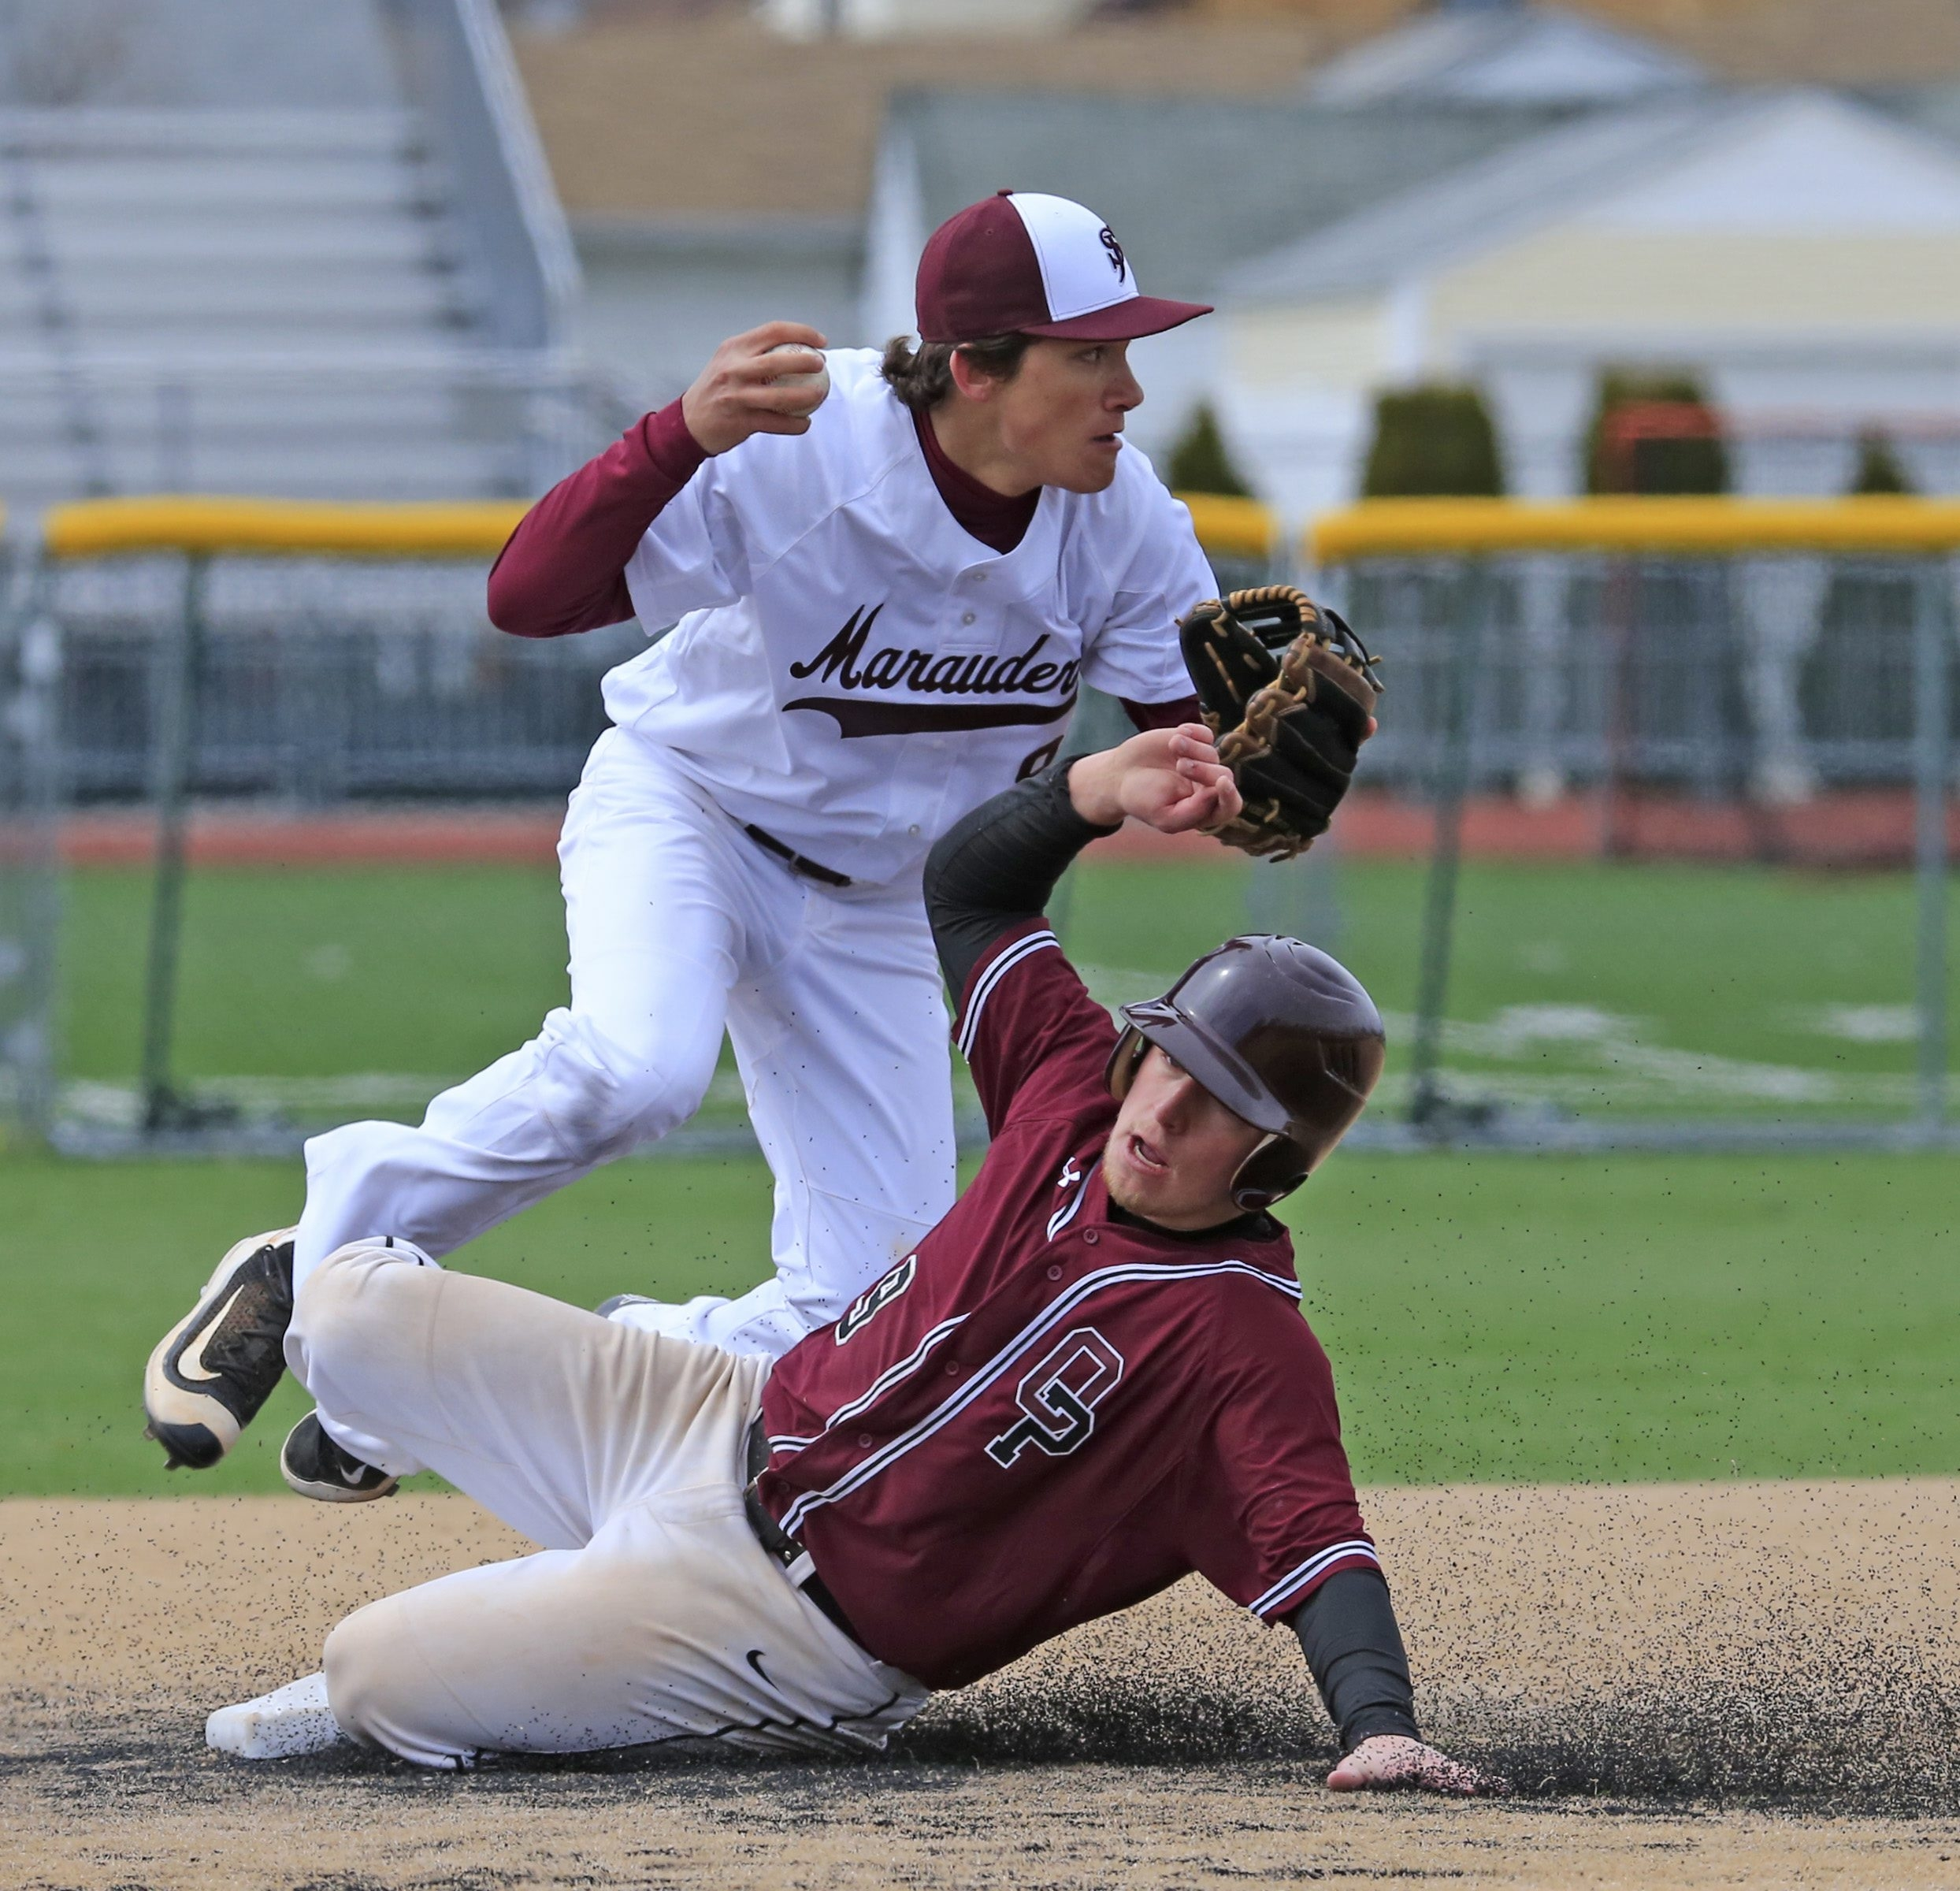 Orchard Park baserunner Troy Banks and St. Joe's infielder Jake Pavicich play for two of the area's top-ranked teams.